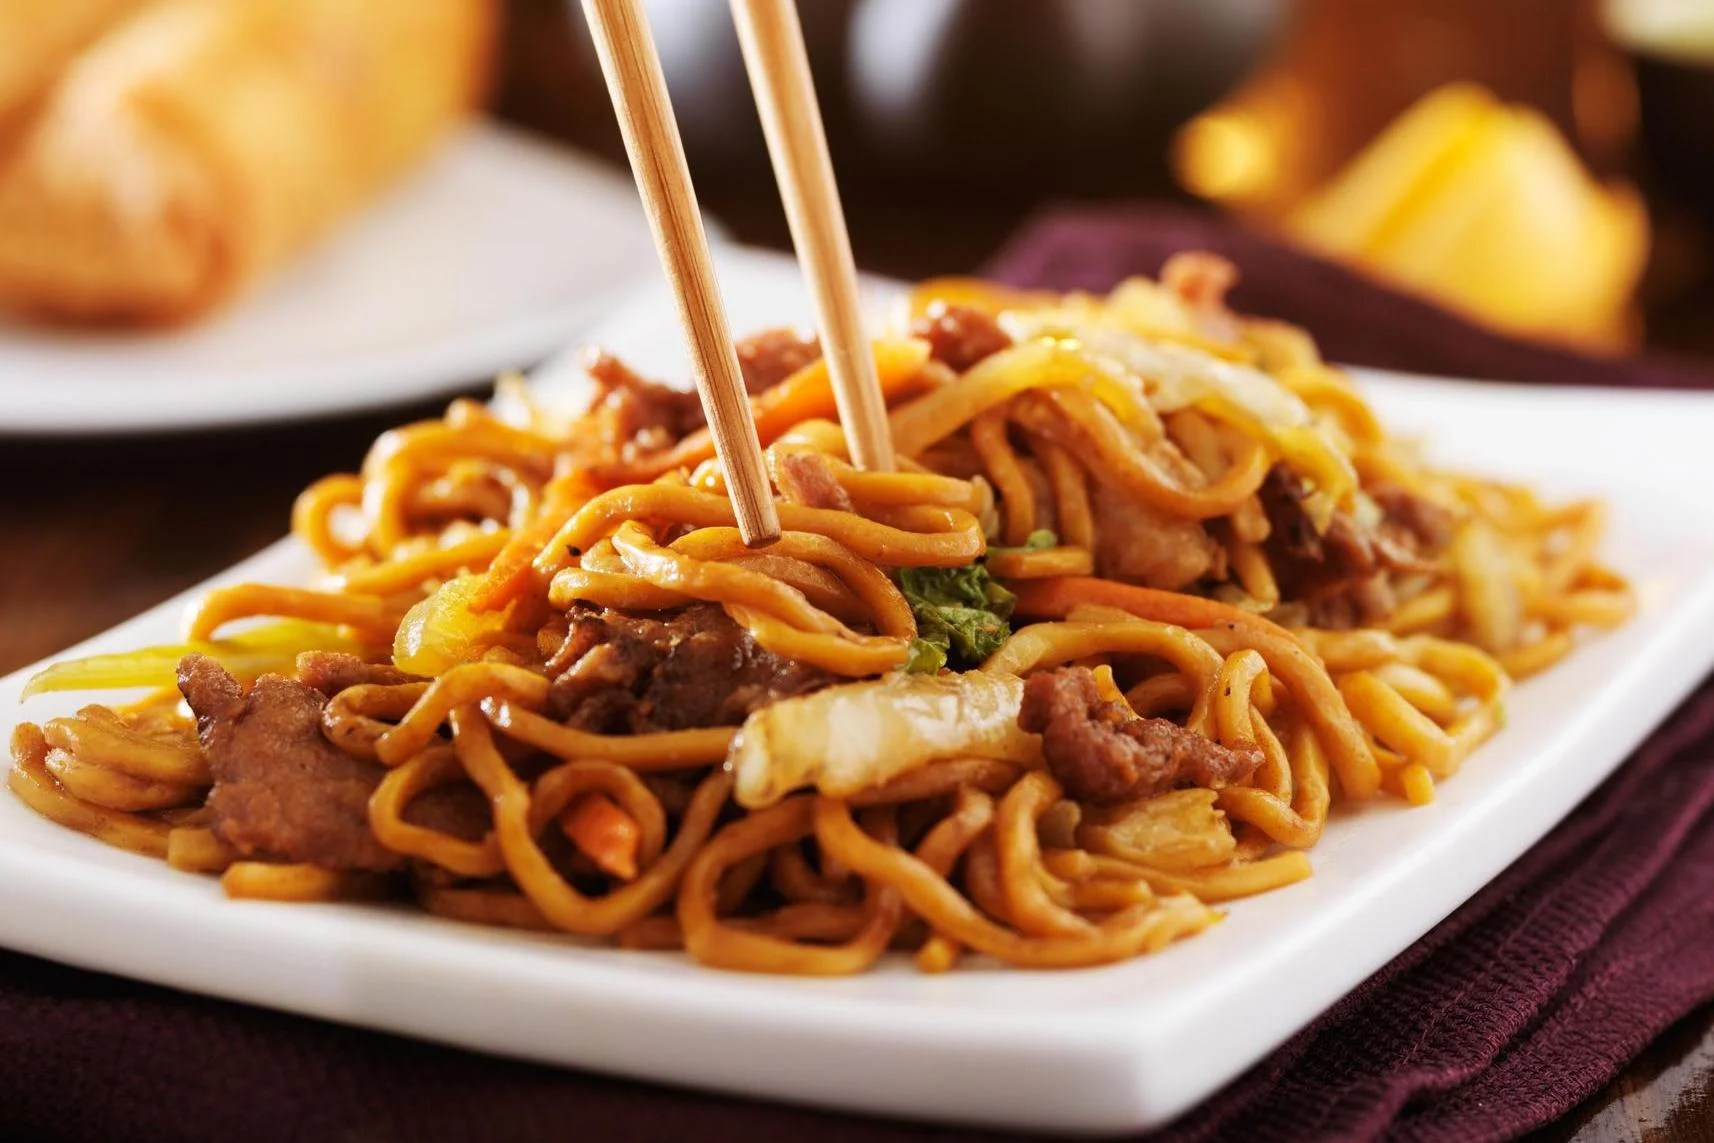 Msg Additive Used In Chinese Food Is Actually Good For You